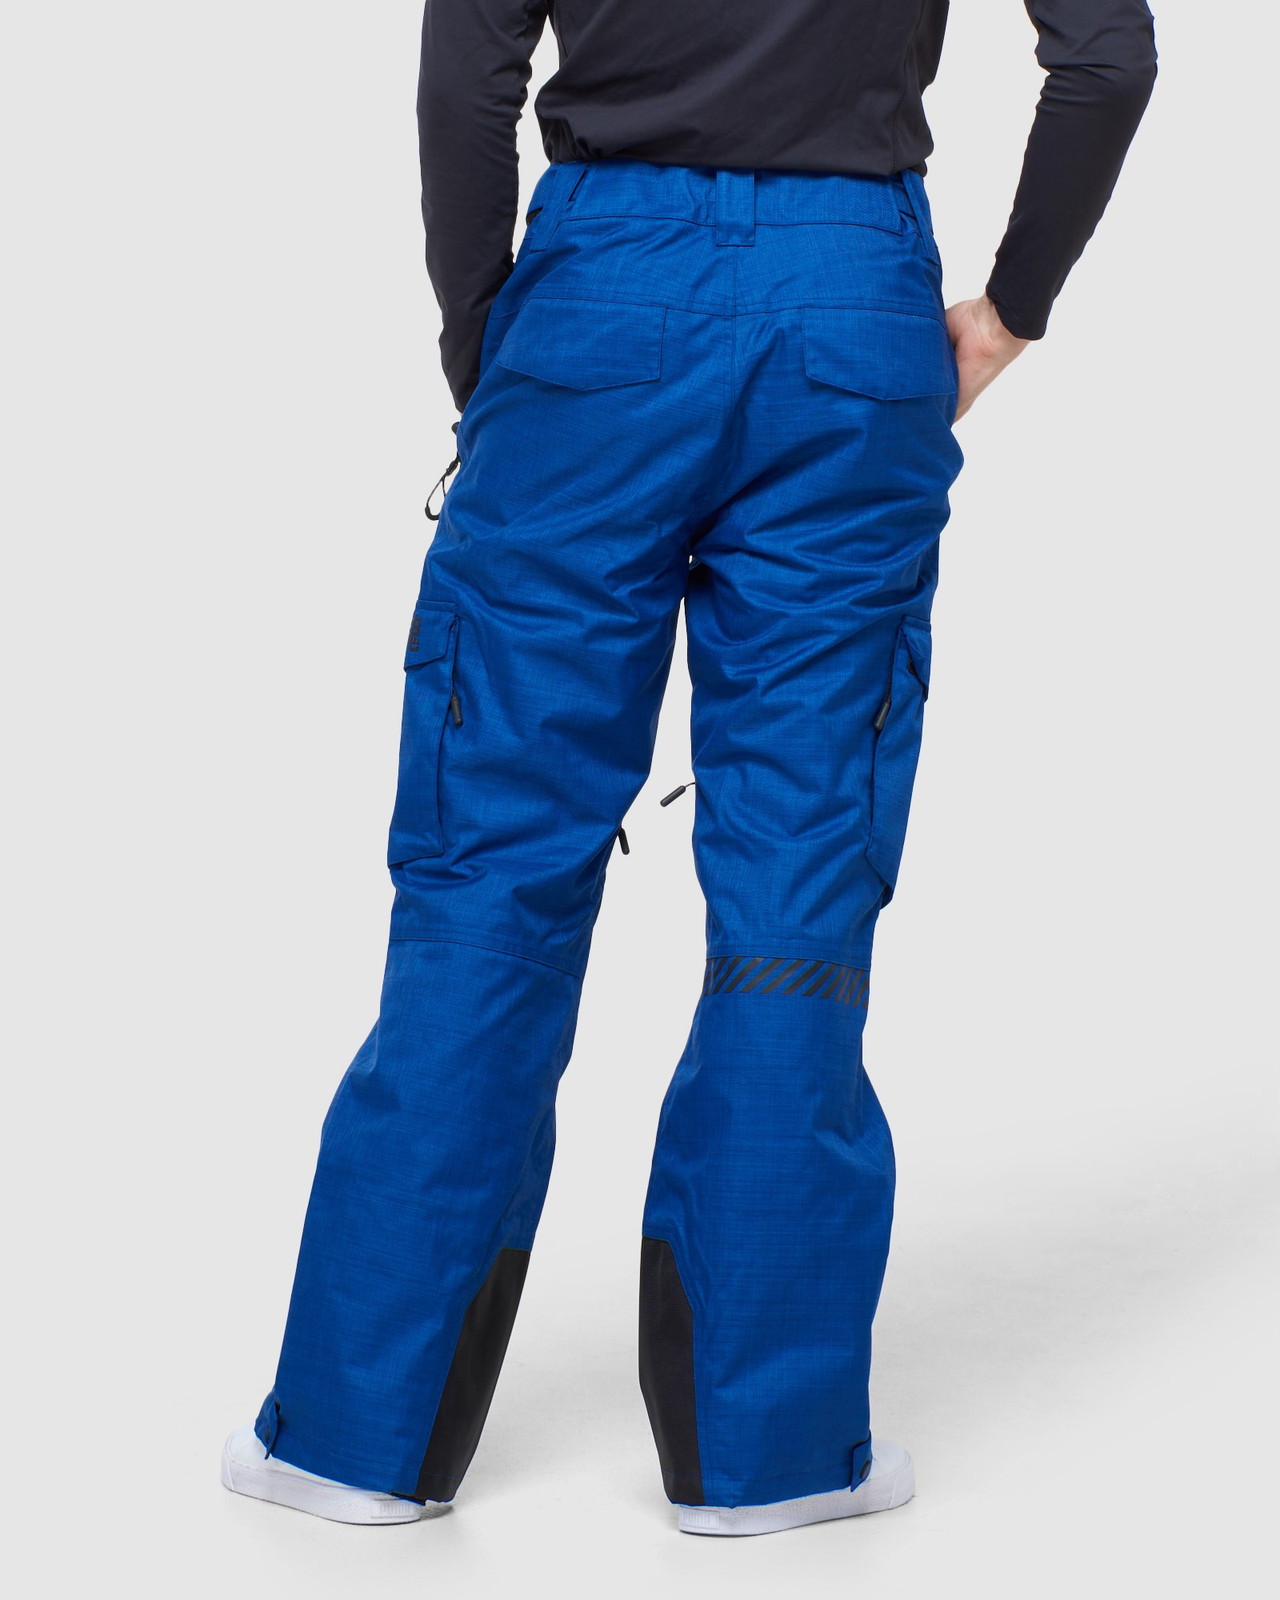 Superdry Mens ULTIMATE SNOW RESCUE PANT Blue Green Snow Pants 3